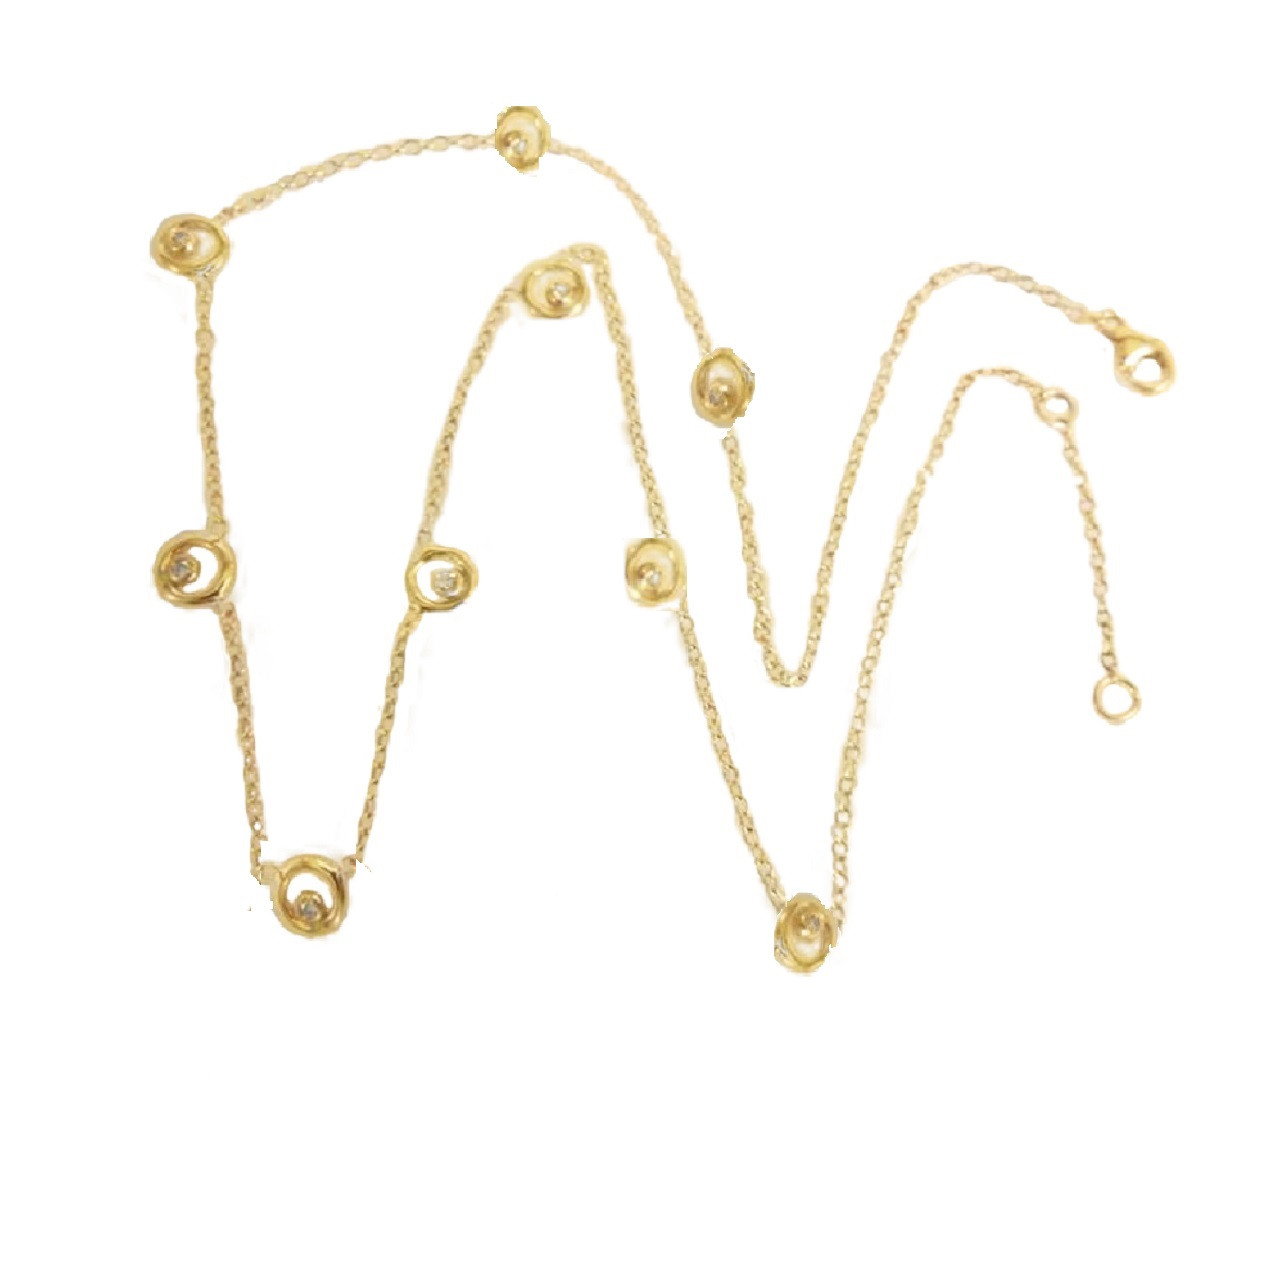 Karma Chain- 14K Gold with Ripples of Diamonds